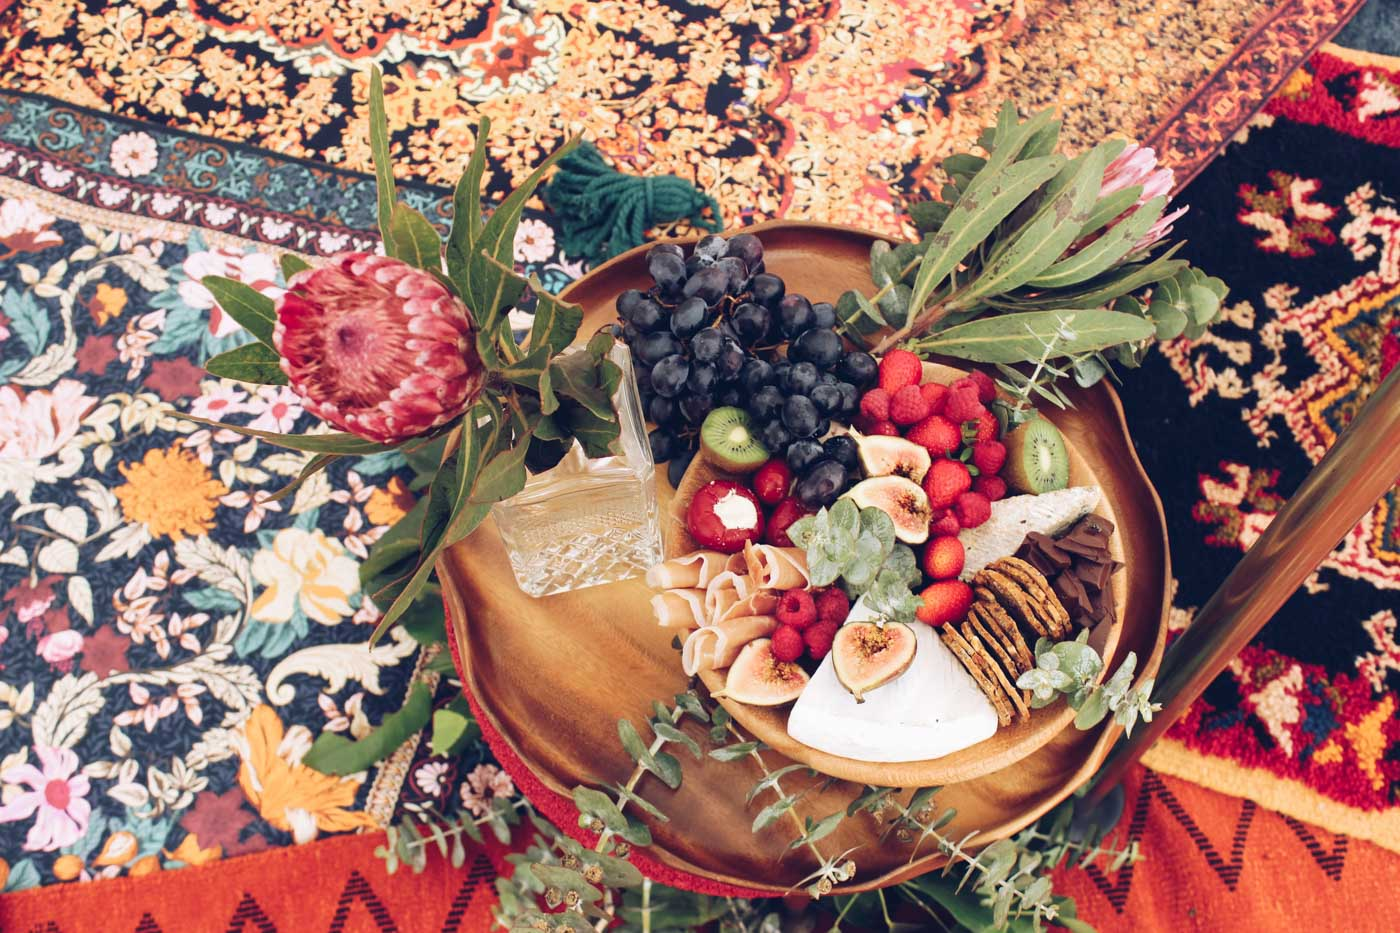 the_Collection_co_grazing_table_cairns_weddings_catering_grazing_platter_hire_pop_up_picnic_bell_tent_event_hire_styling-44-2.jpg